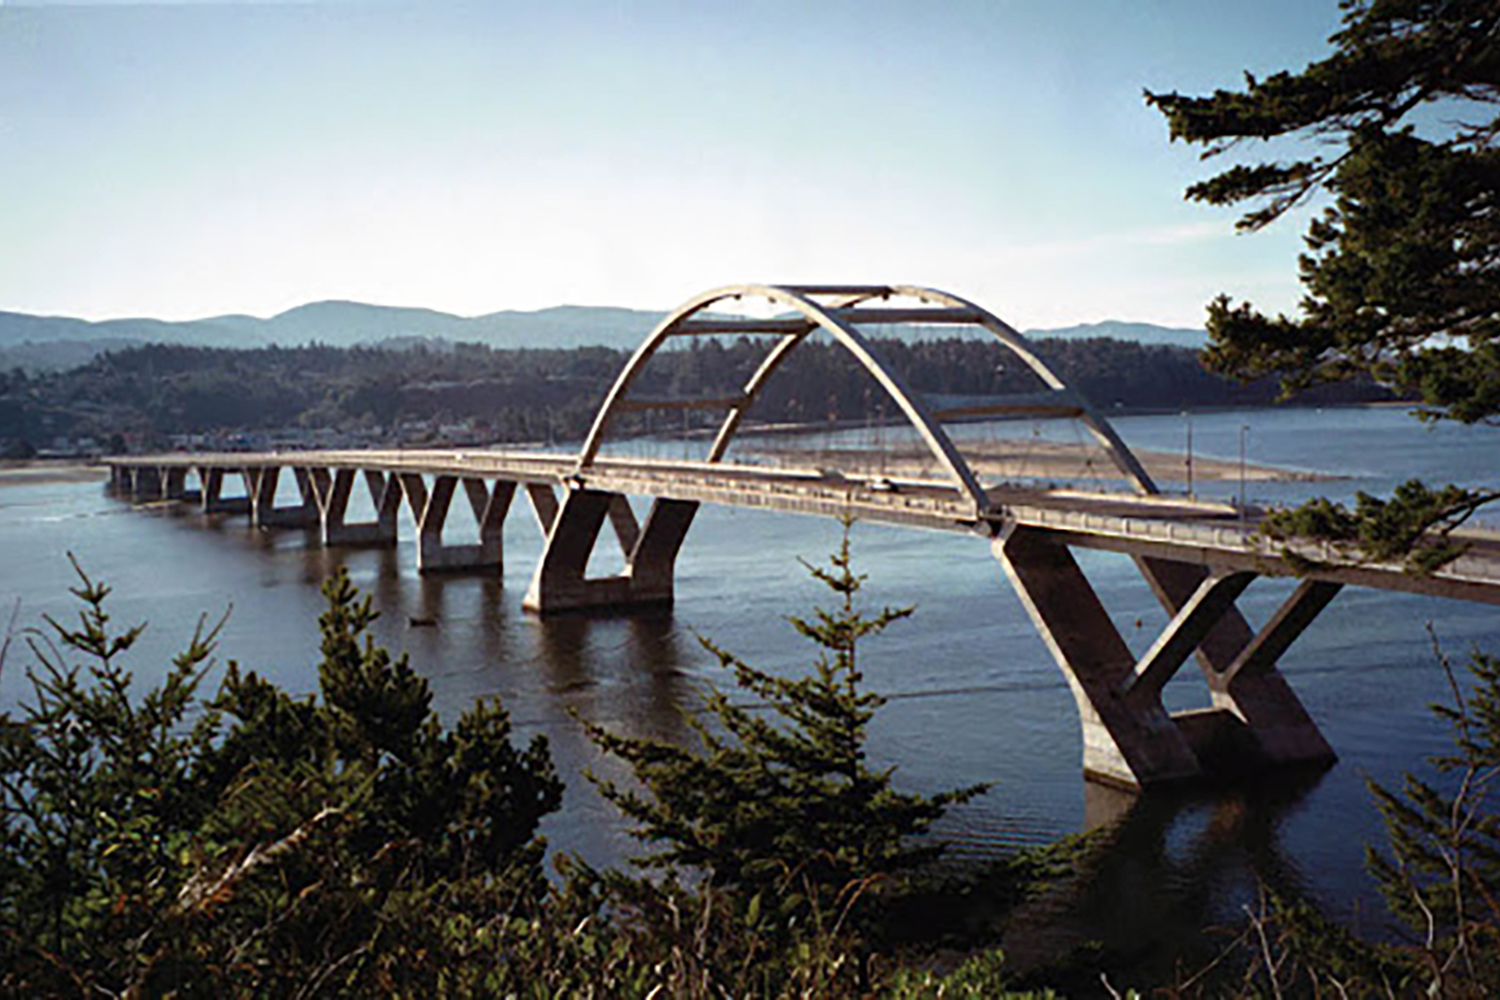 alsea-bridge-image-02-1000x1500.jpg